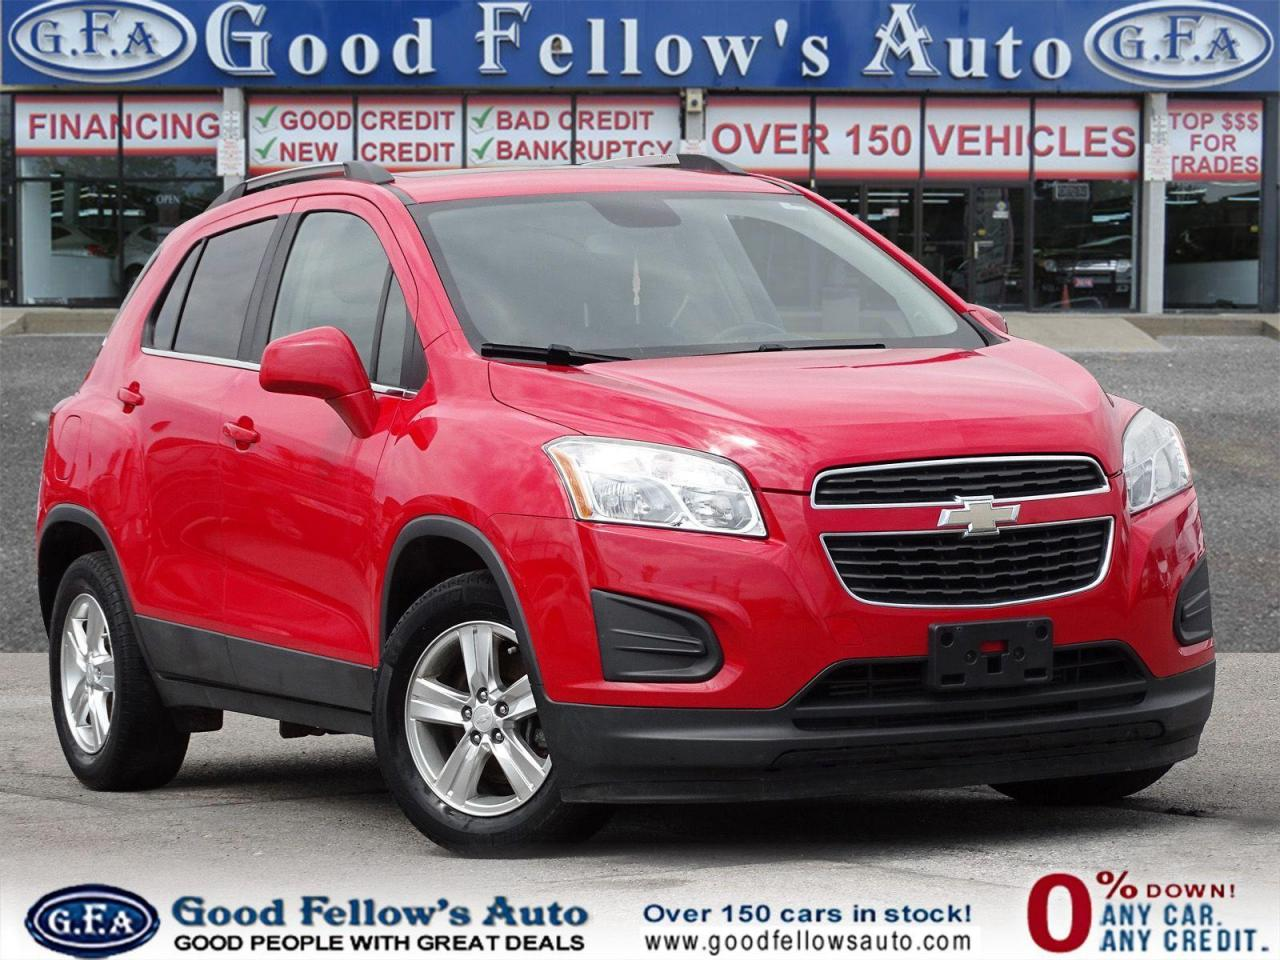 used 2014 Chevrolet Trax car, priced at $7,400